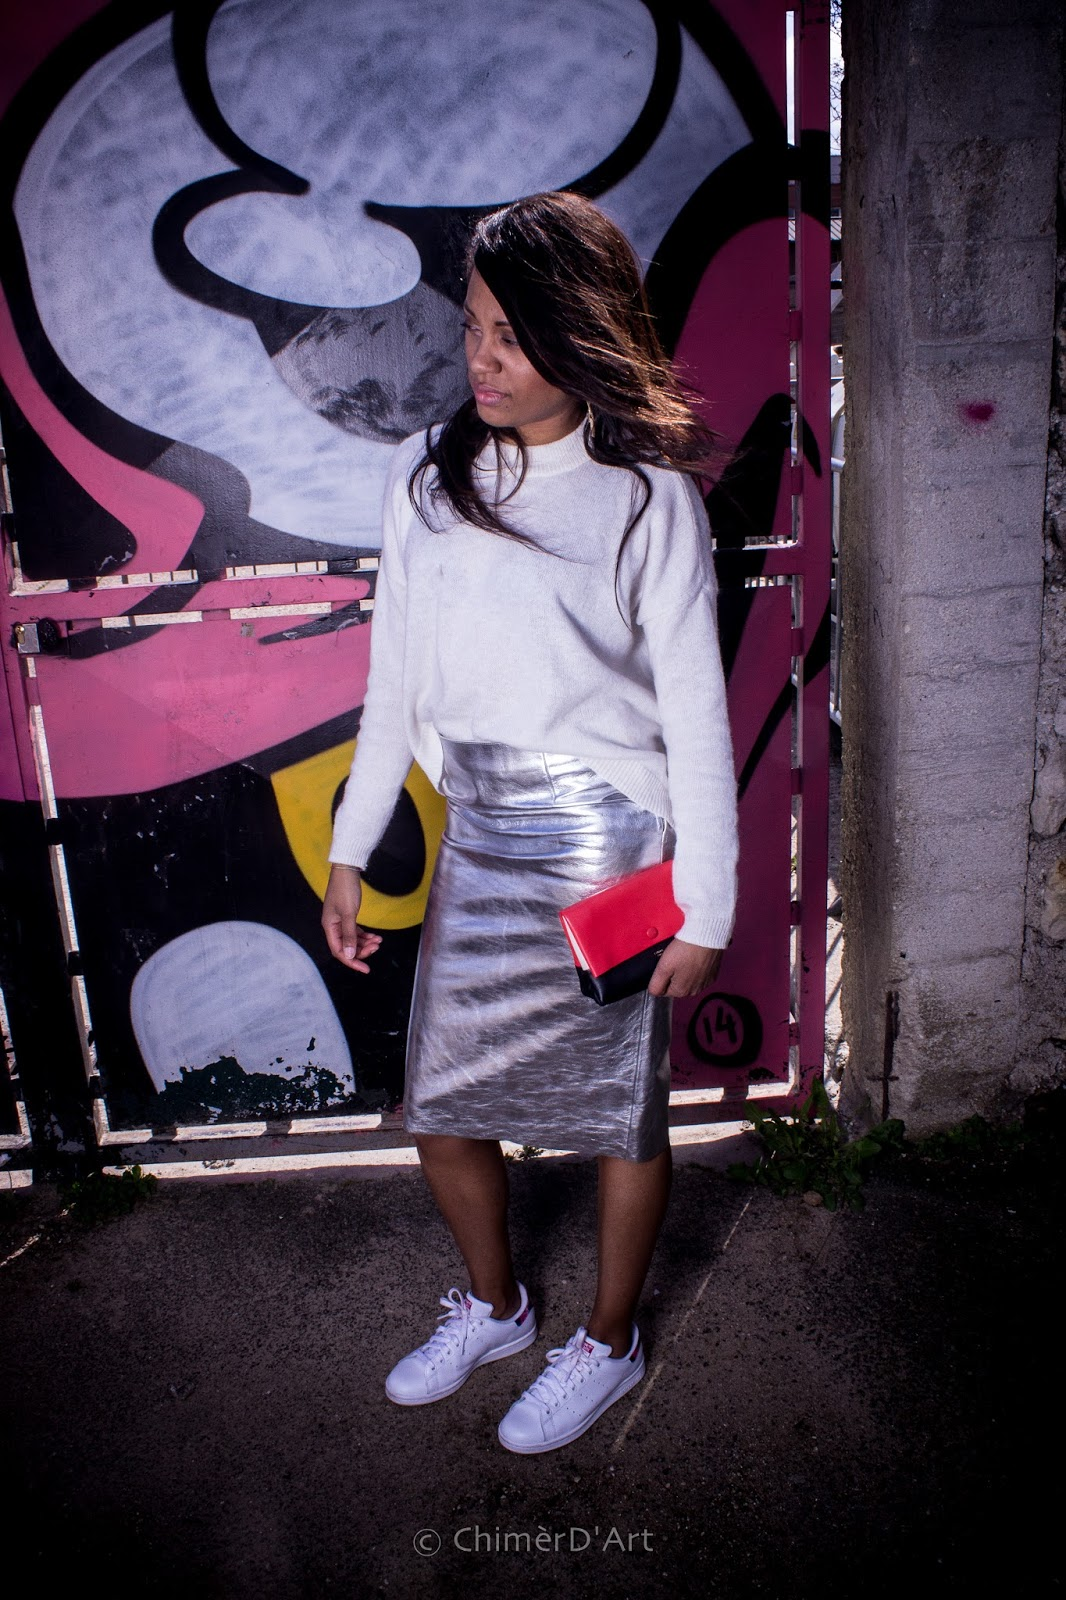 Maje: The Silver Skirt / La Jupe Argent